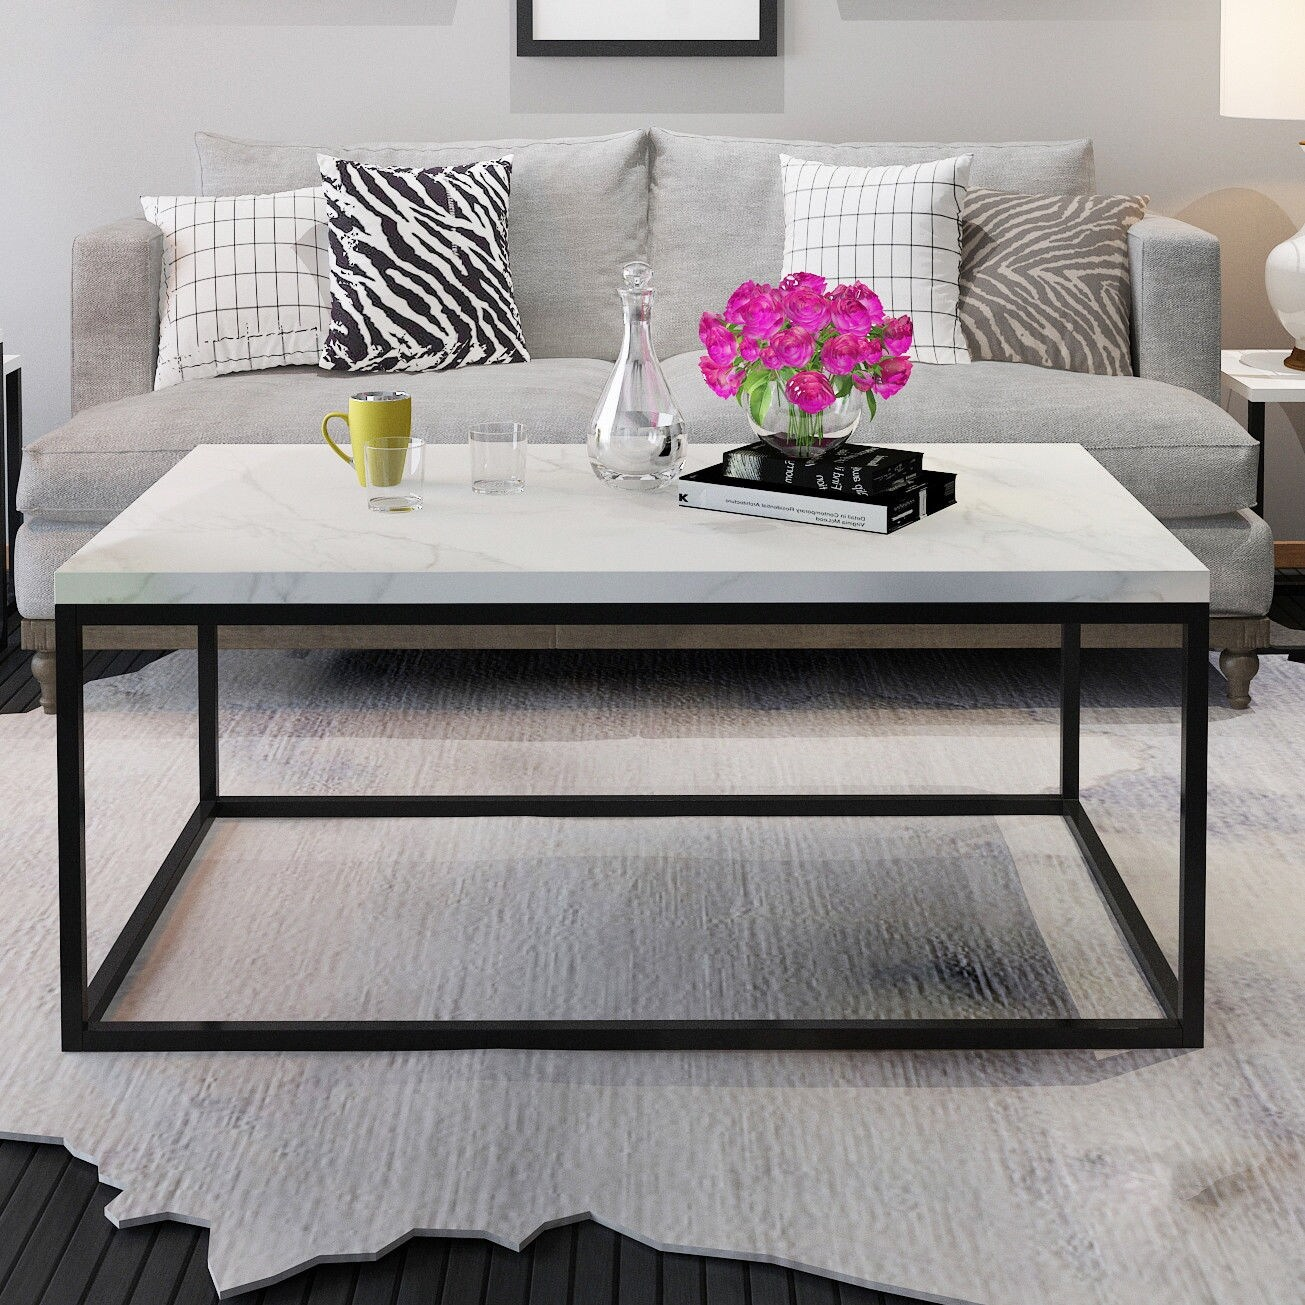 Modern Lounge Room Furniture Gymax Modern Rectangular Cocktail Coffee Table Metal Frame Living Room Furniture Black And Marble